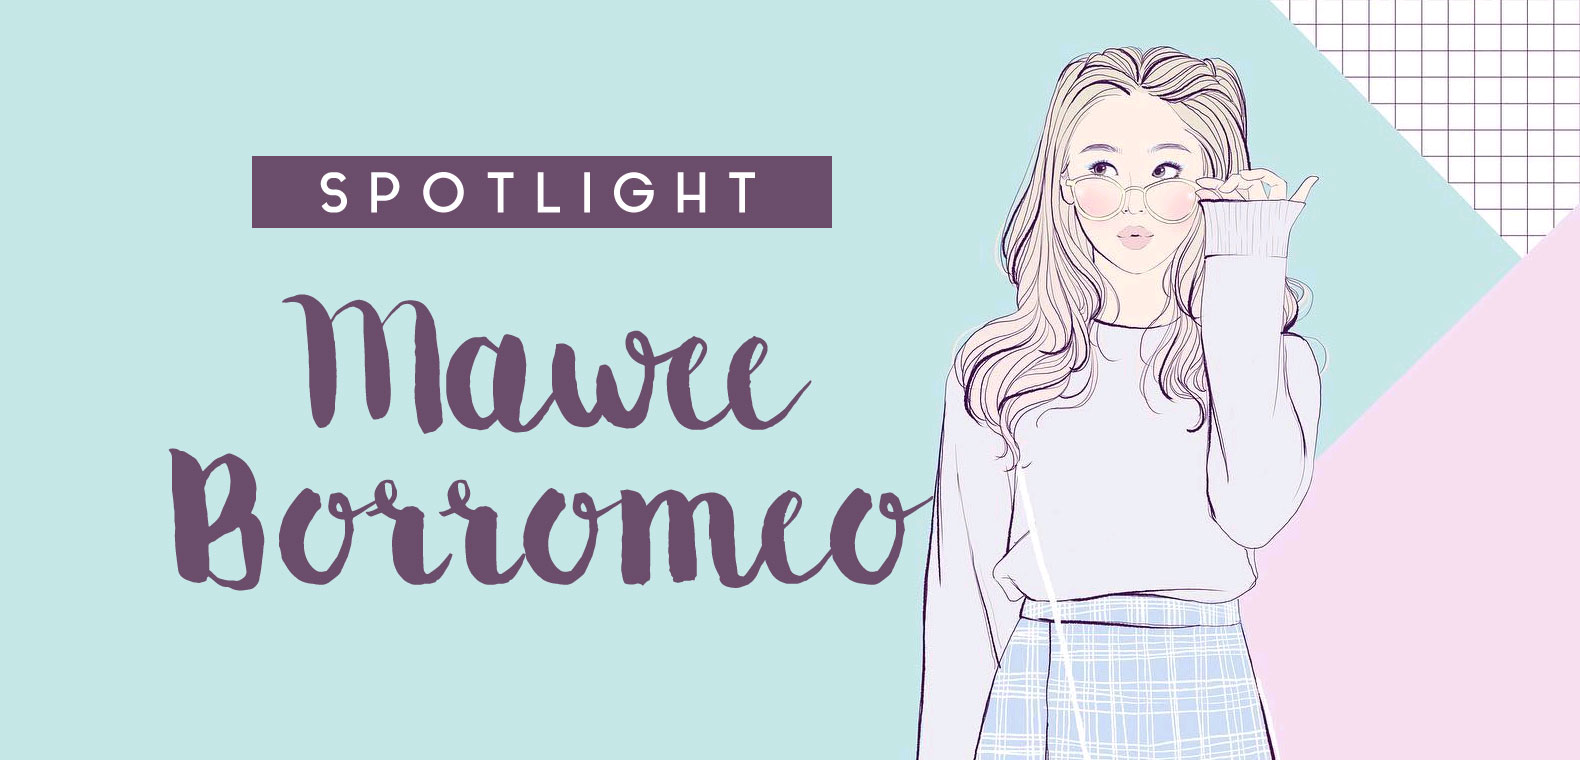 Mawee Borromeo: The Artistique Illustrator | Anne's Scribbles and Doodles